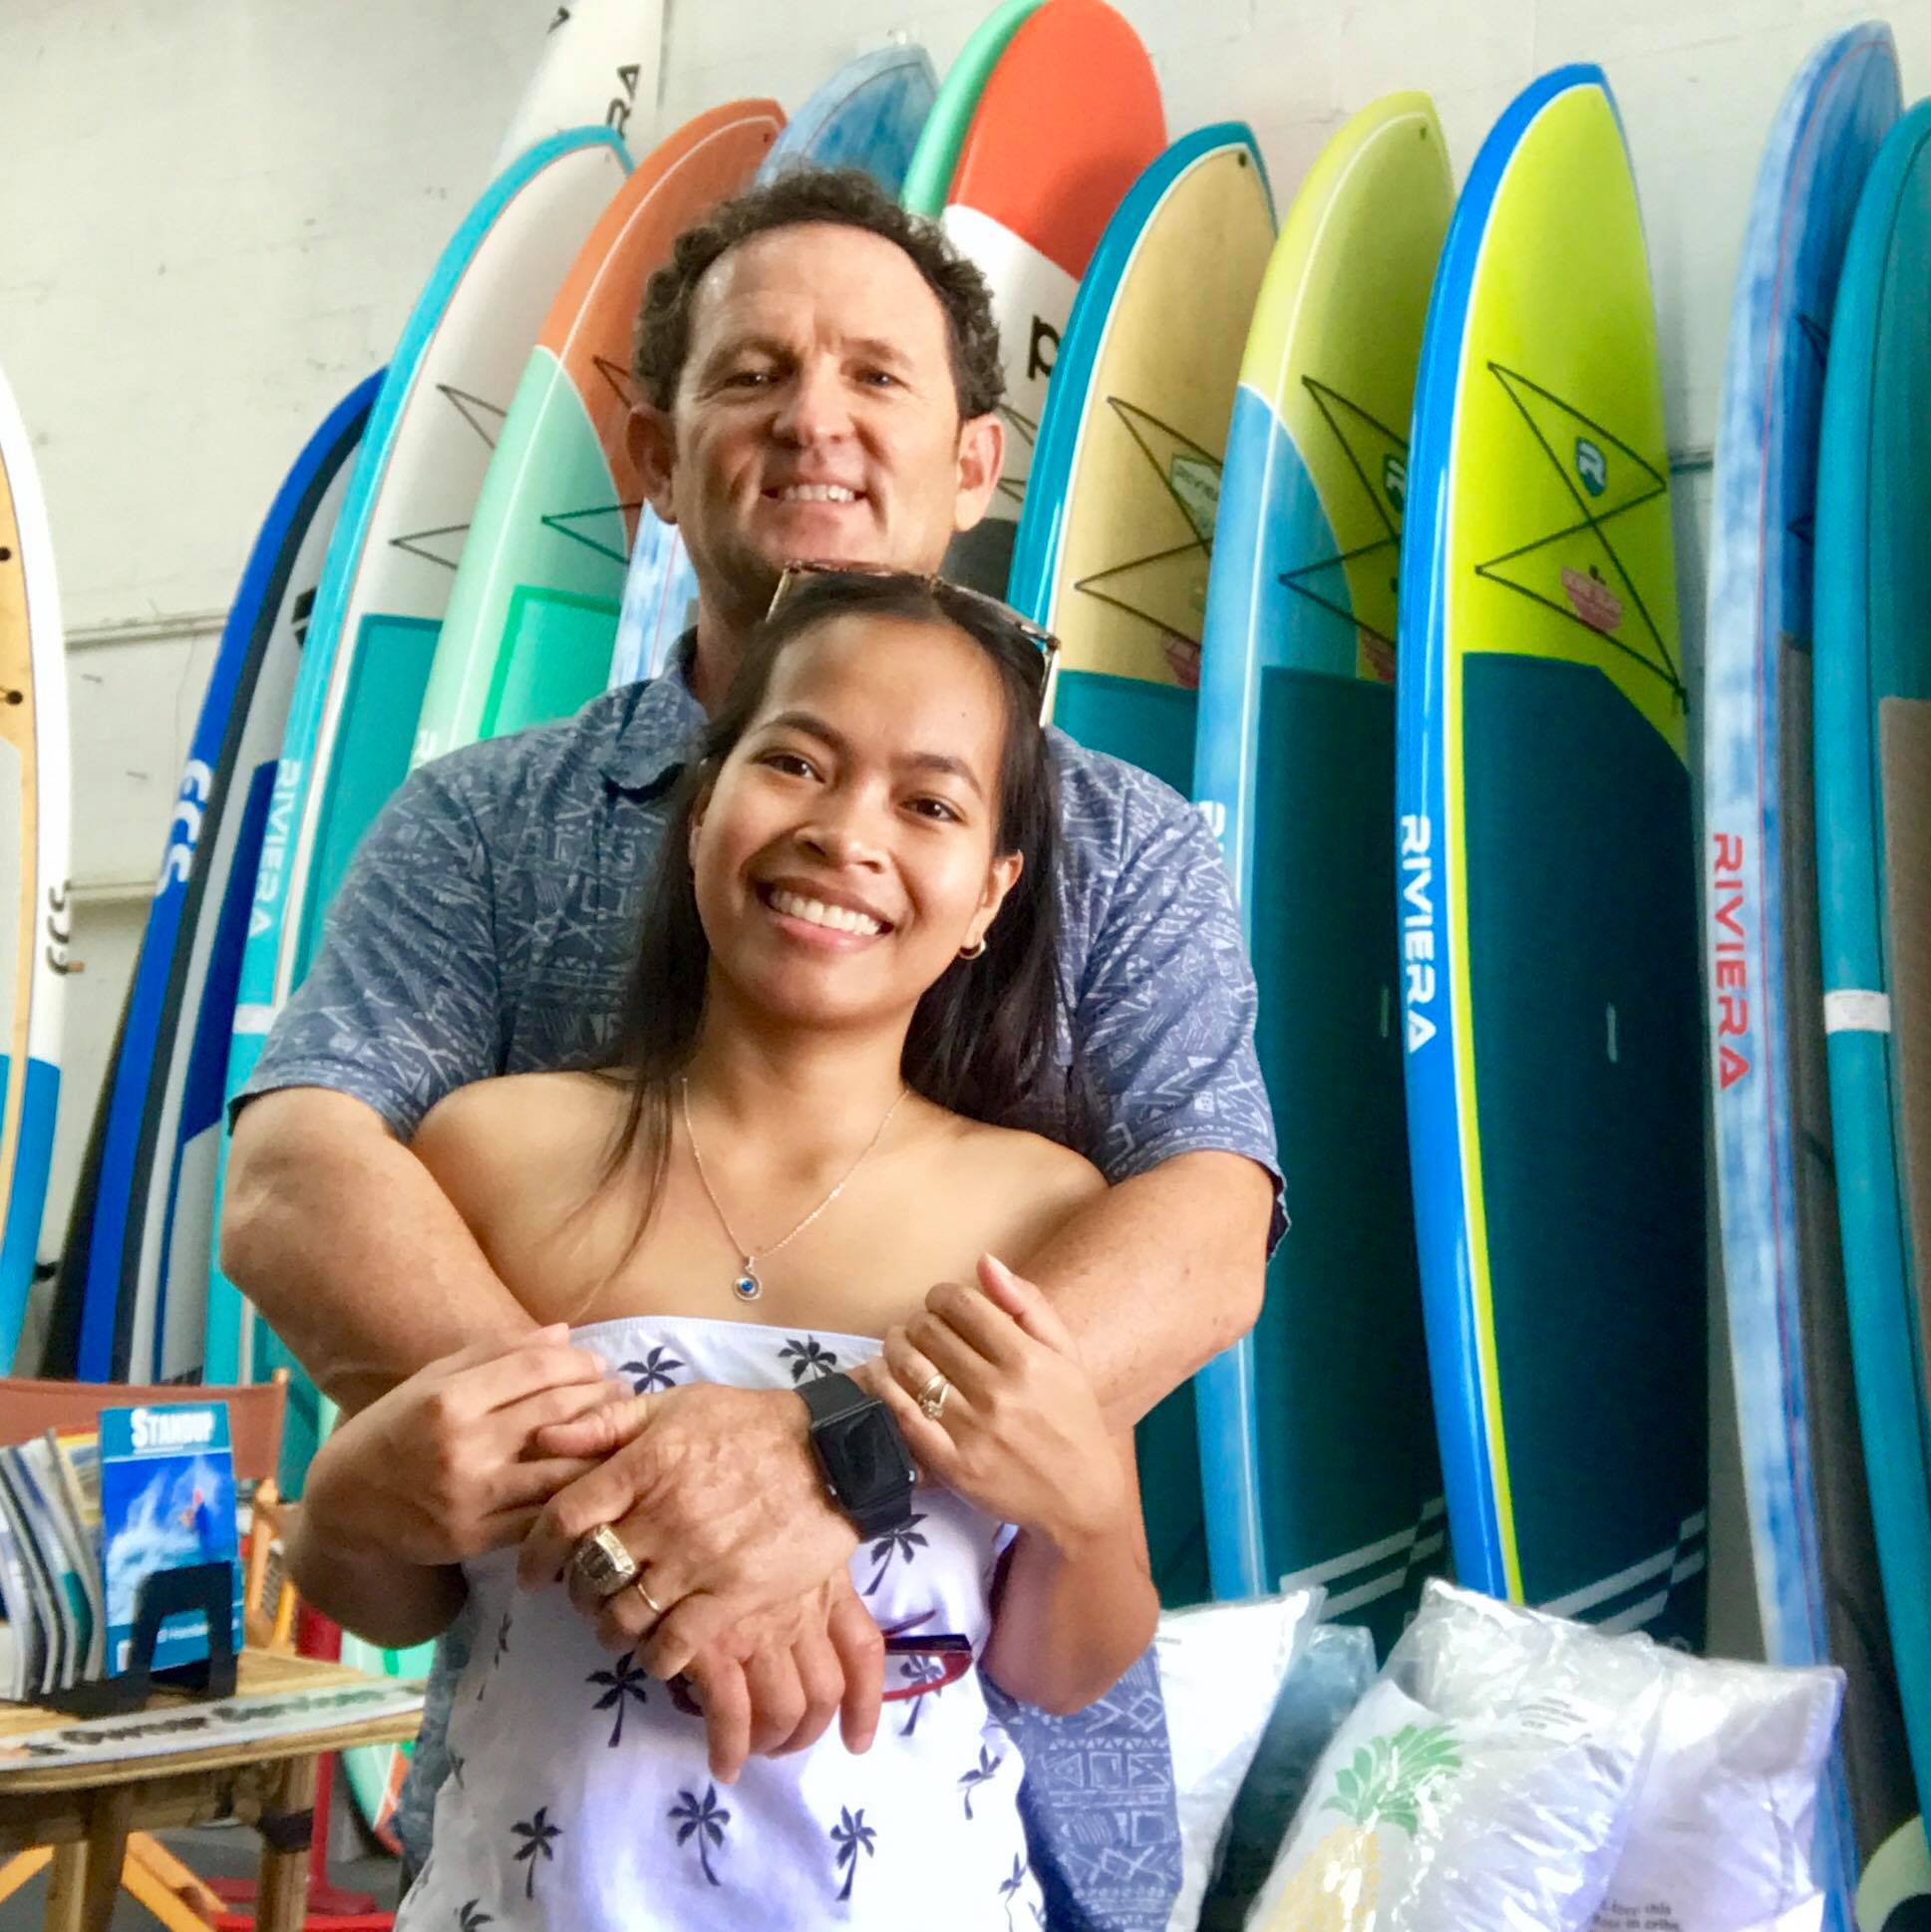 Girard Middleton and wife Kristine Middleton at their Sobe Surf & Paddle shop